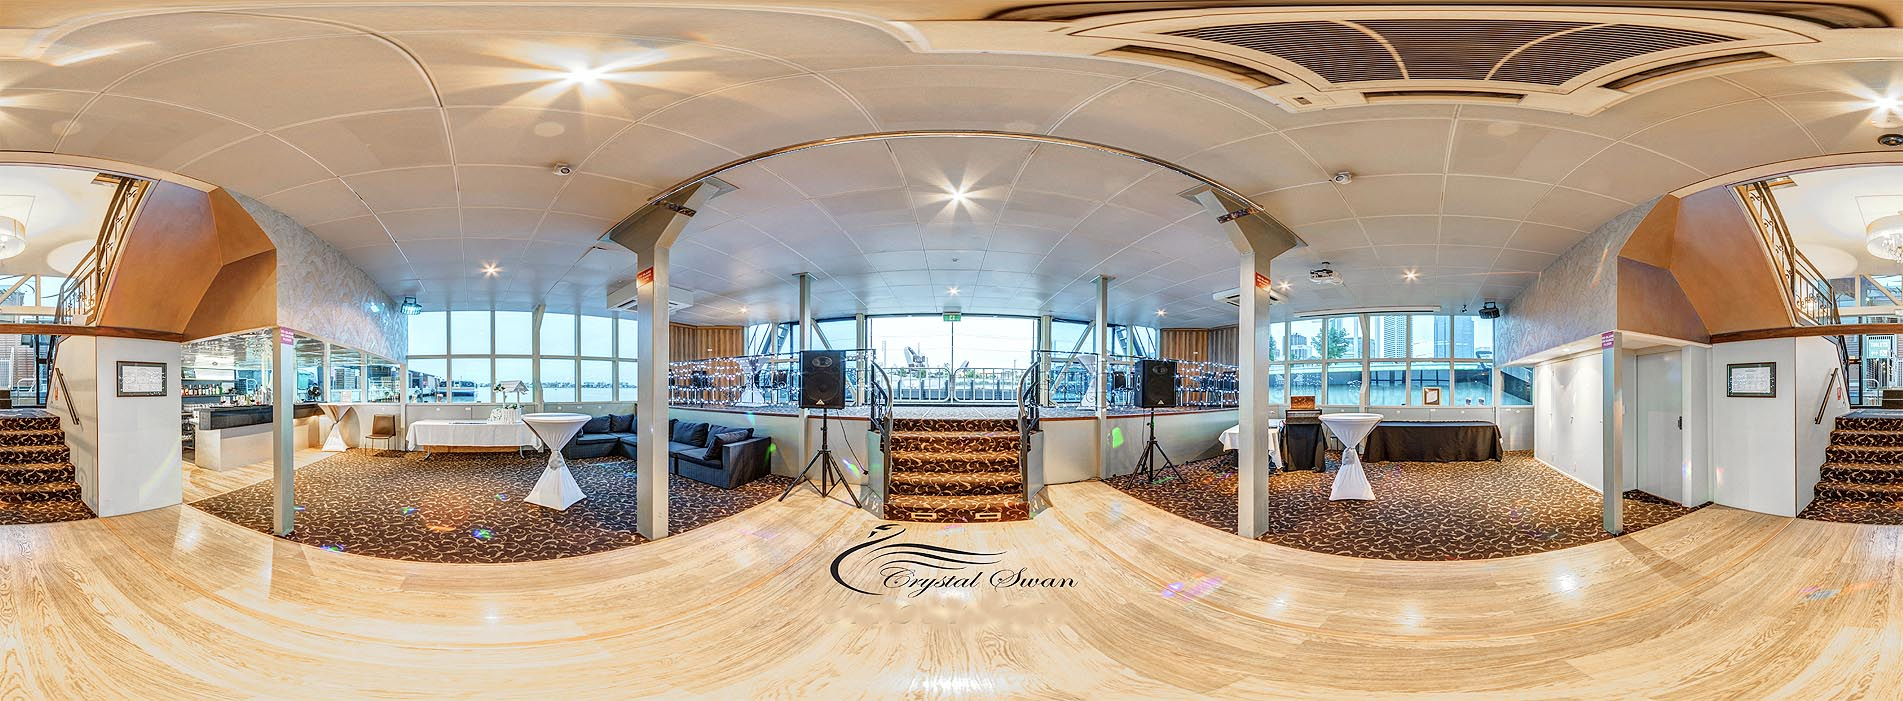 CRYSTAL SWAN BOAT CHARTER PERTH DINING DECOR